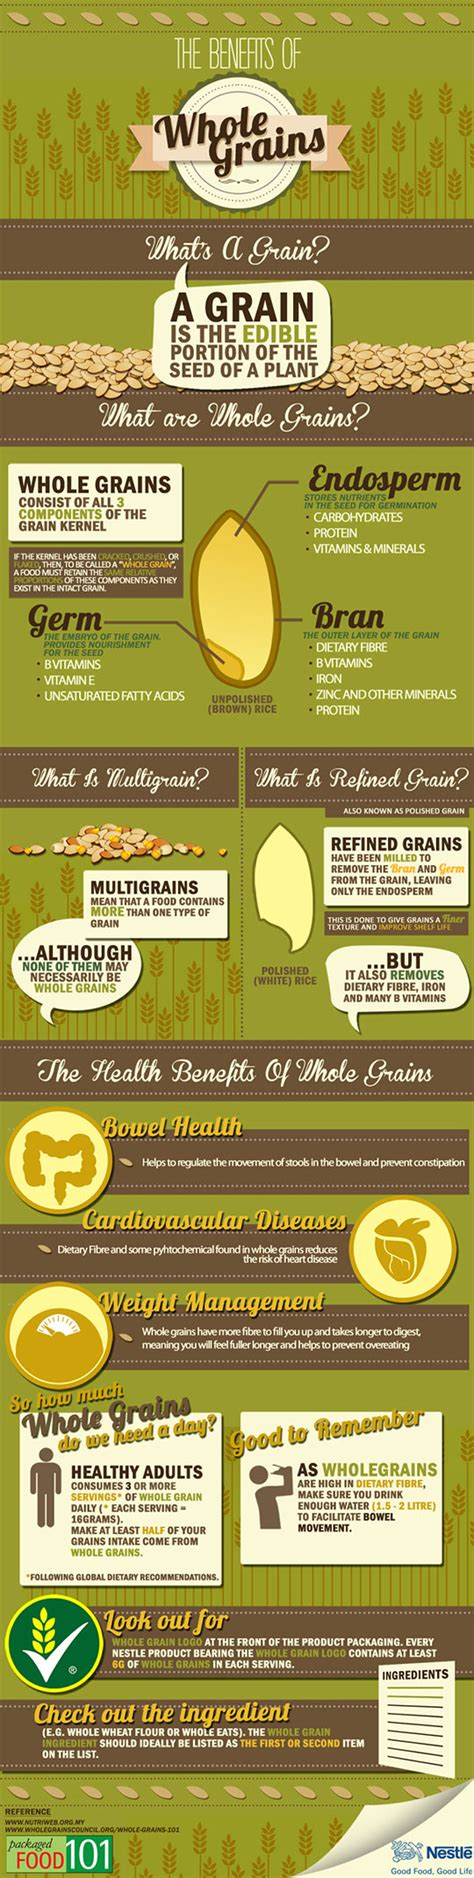 whole grains and health whole grains health benefits